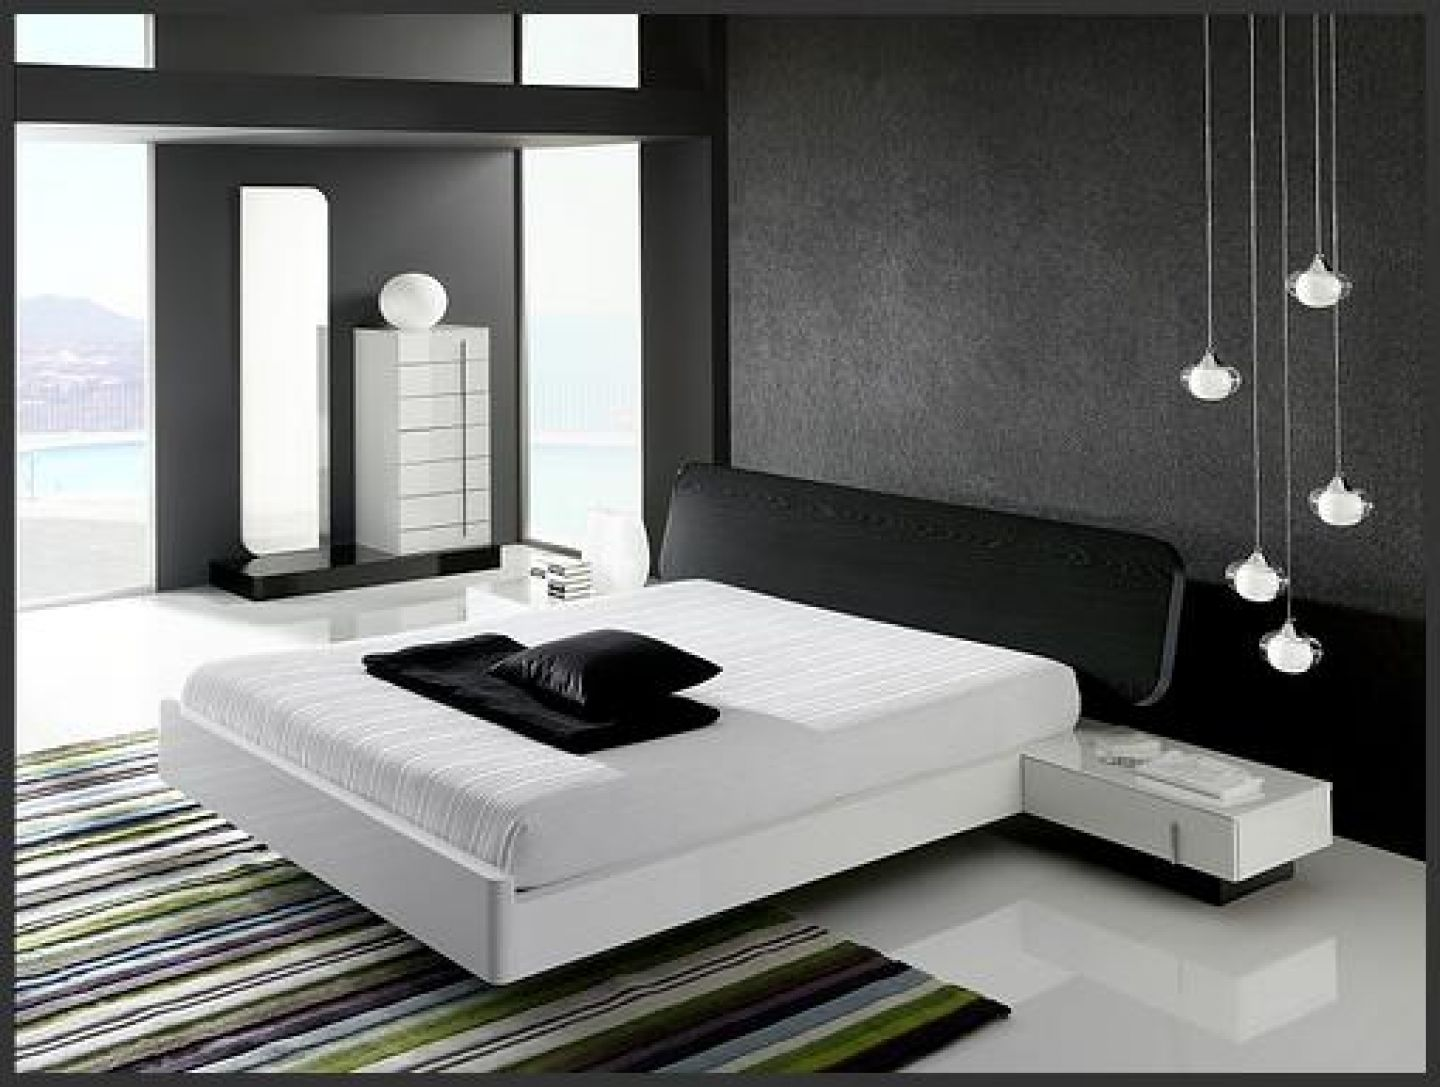 Black And White Room interior minimalist black and white bedroom interior design